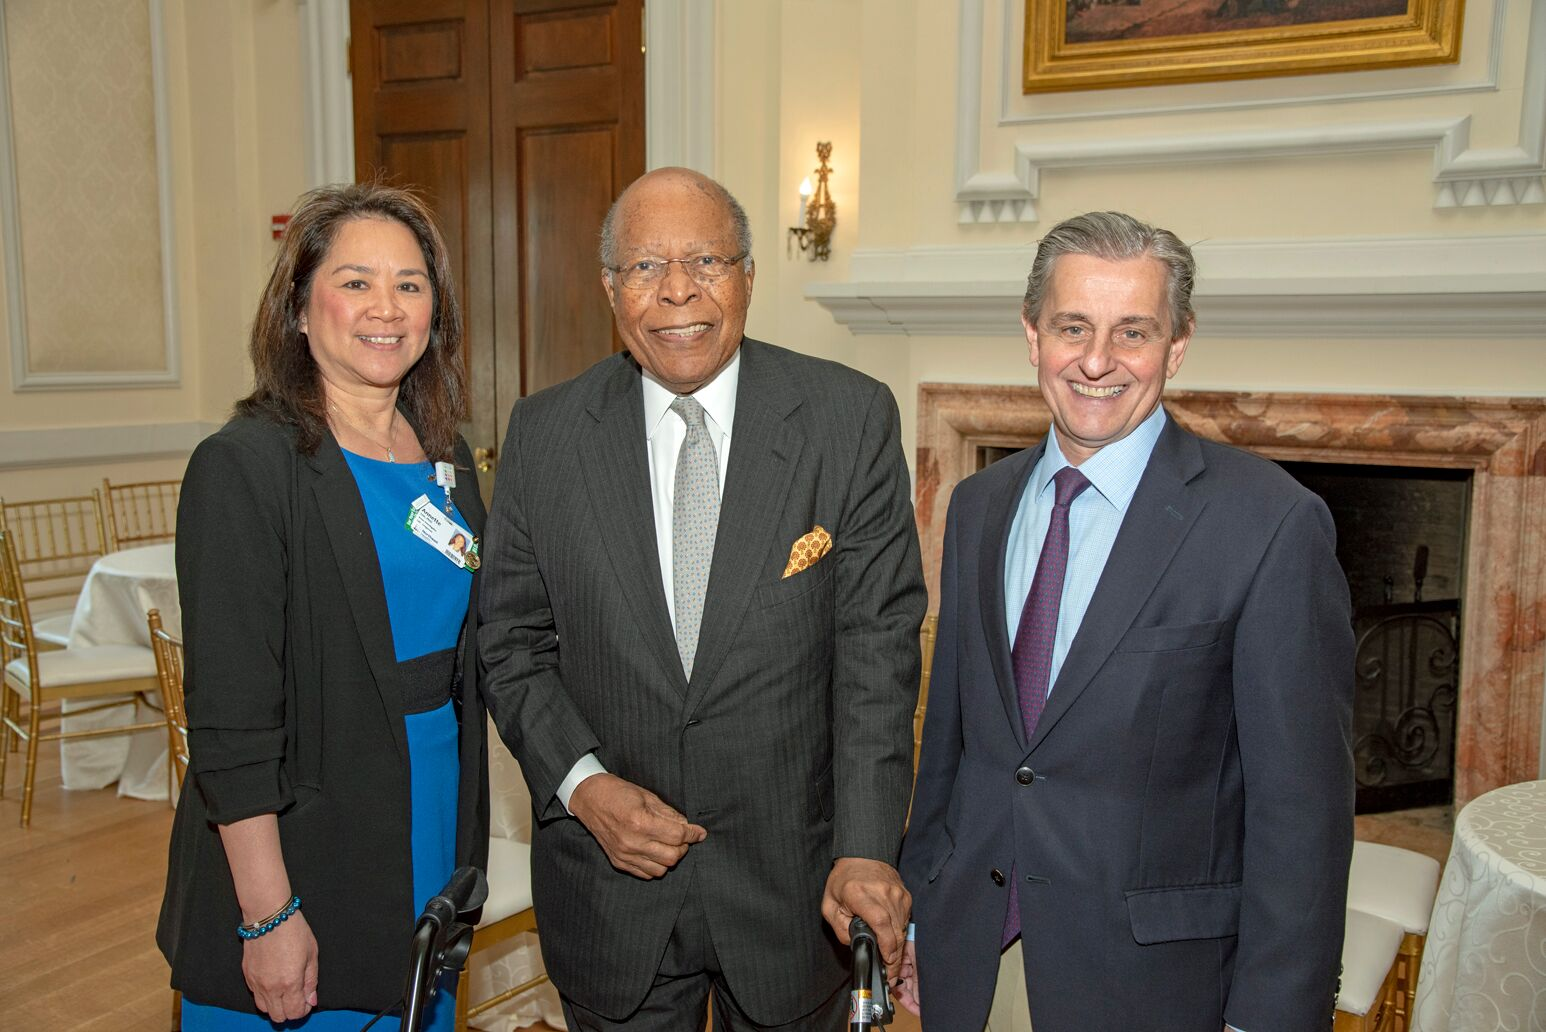 Annette T. Lee, PhD, (left) with Louis W. Sullivan, MD, and Kevin. J. Tracey, MD